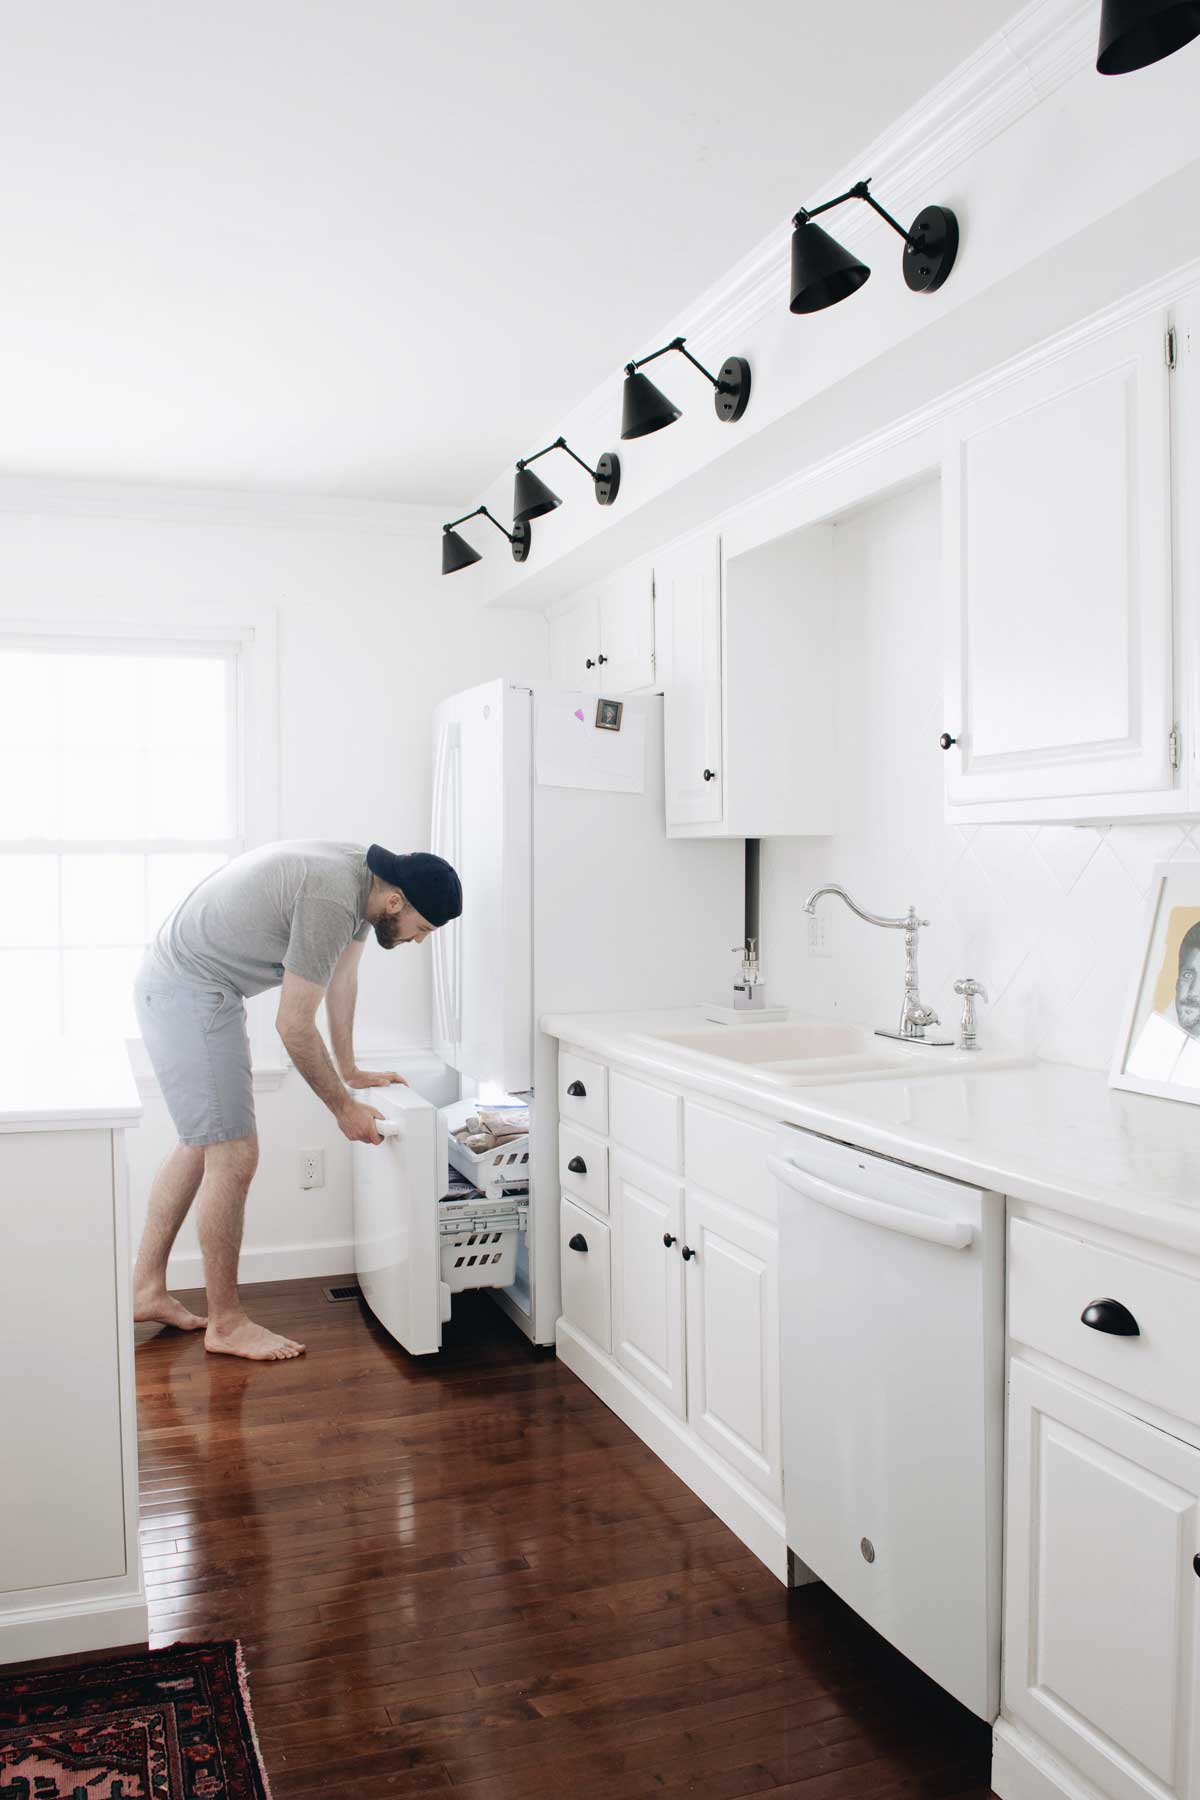 RENOVATING A KITCHEN WITHOUT NEEDING A GUT JOB